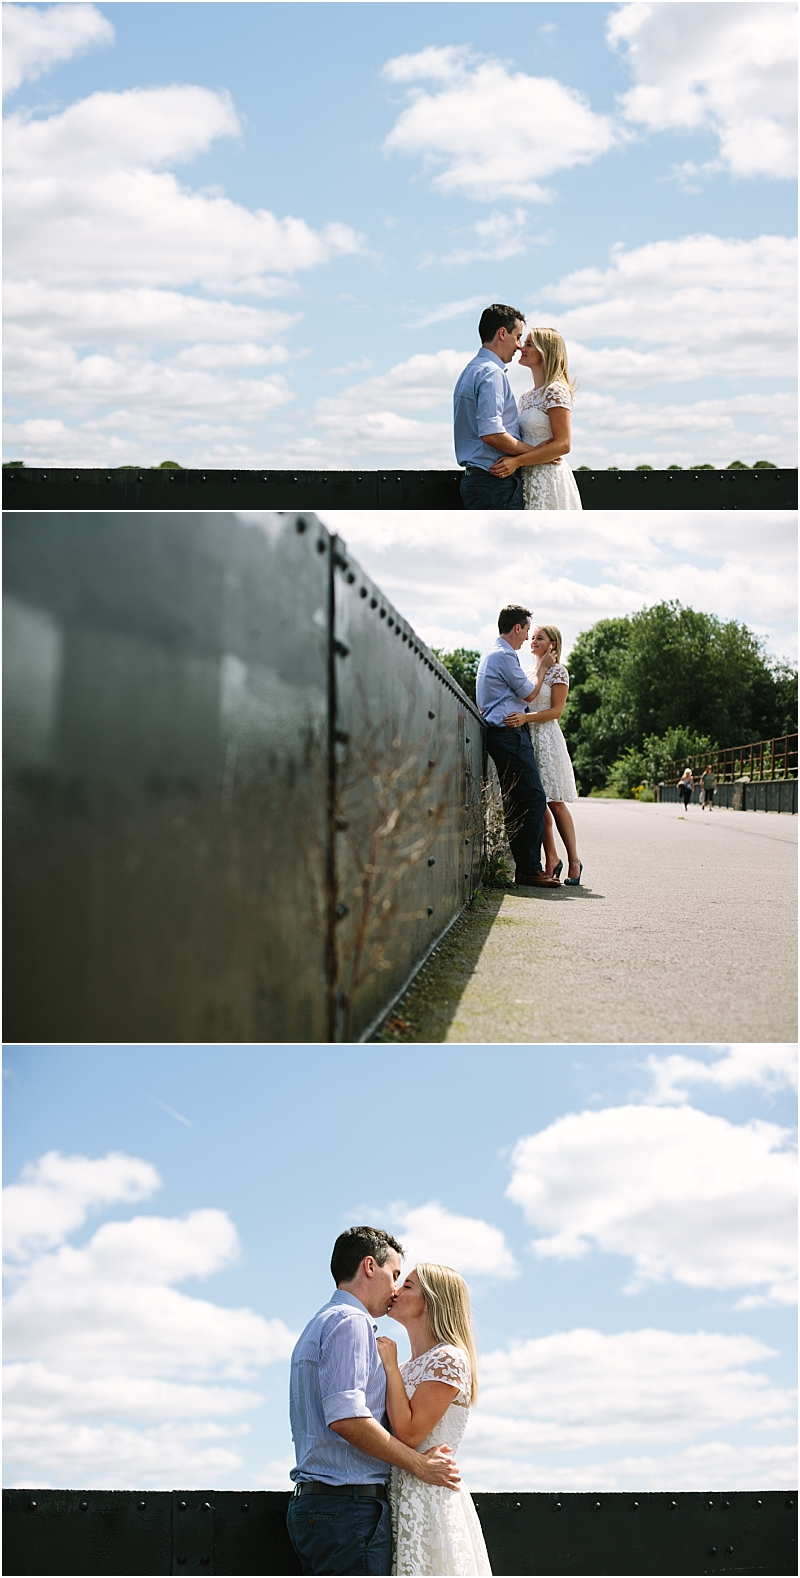 Pre wedding photography shoot